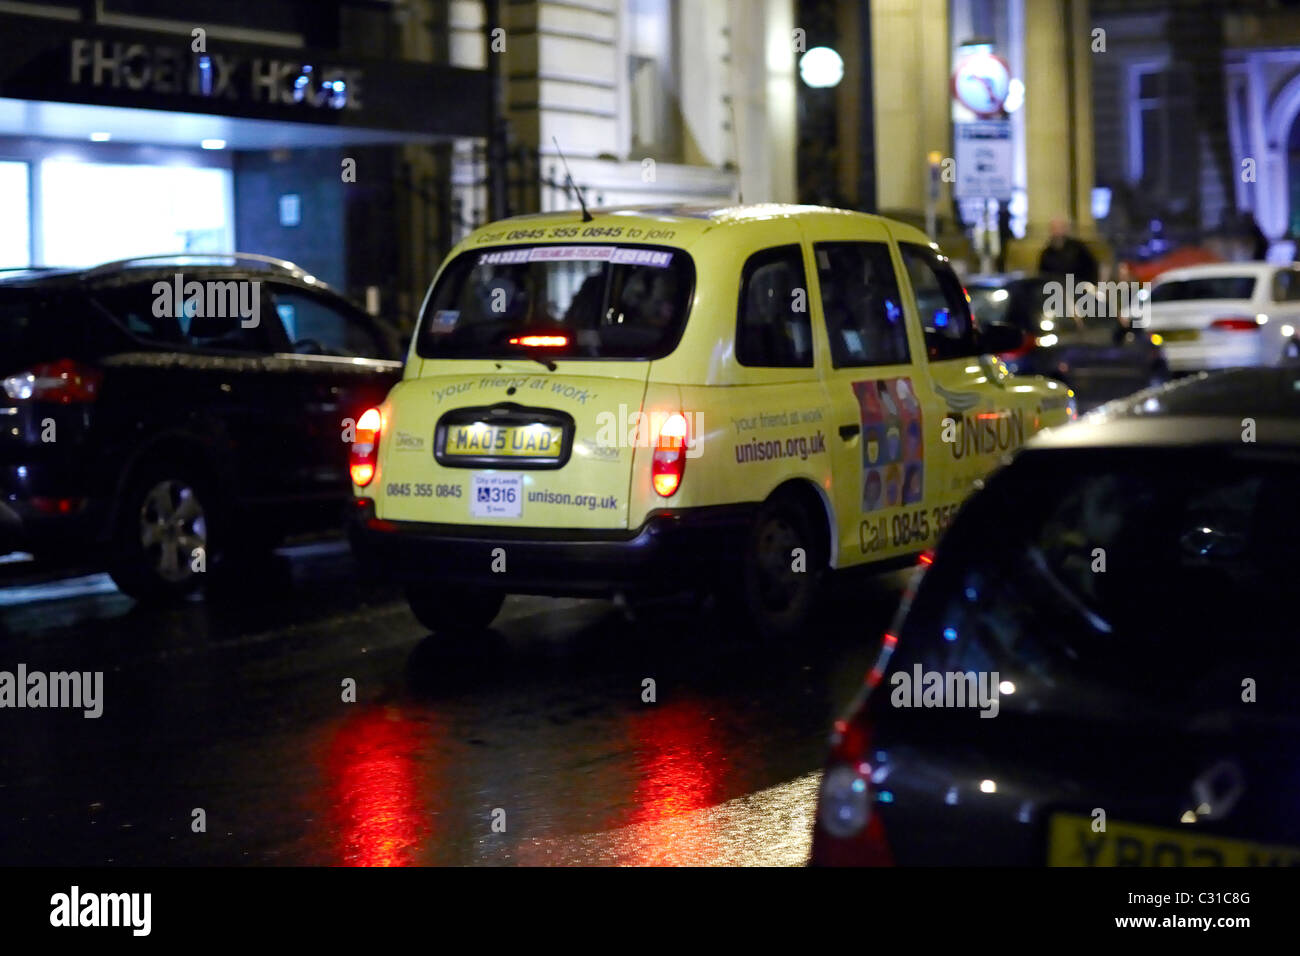 Taxi in Leeds at night - Stock Image